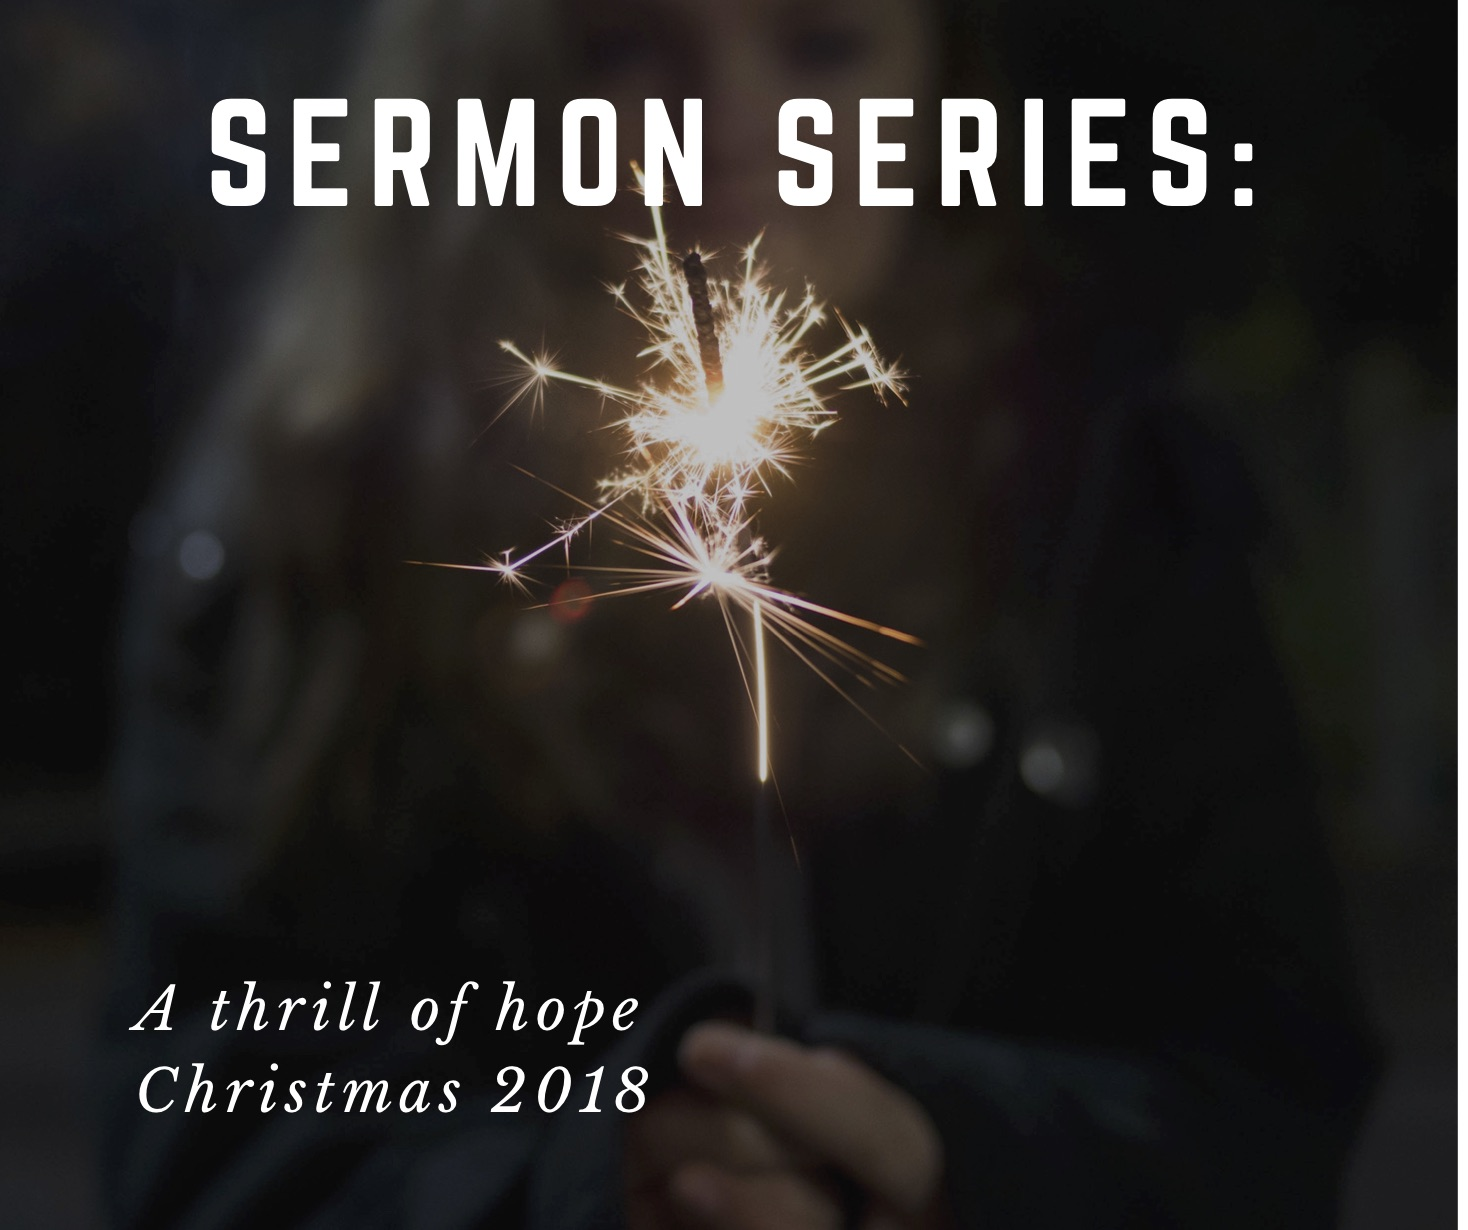 Thrill of Hope Sermon Series image.jpg